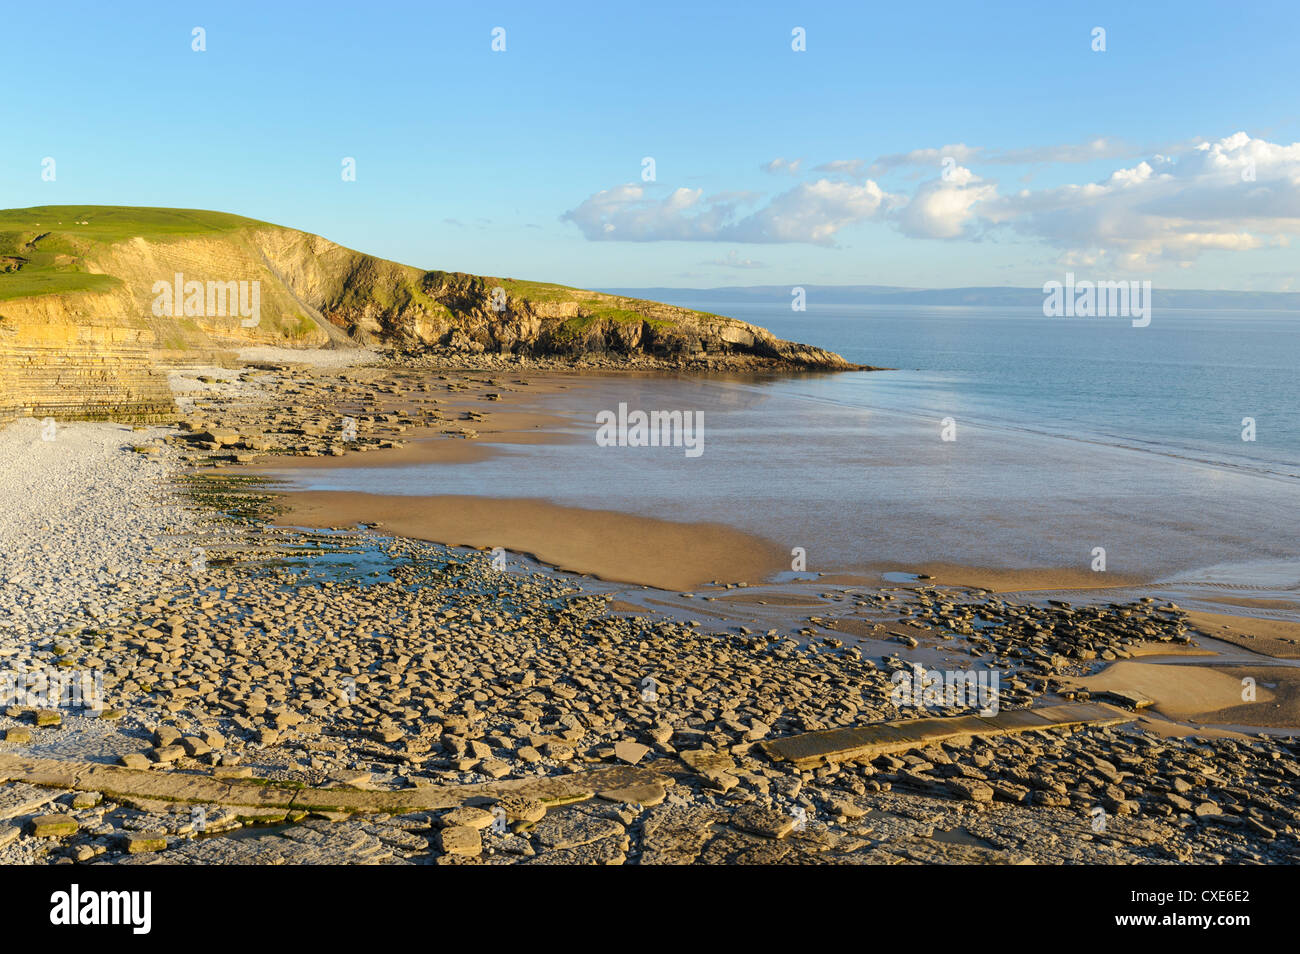 Dunraven Bay from cliff tops, Southerndown, Wales - Stock Image